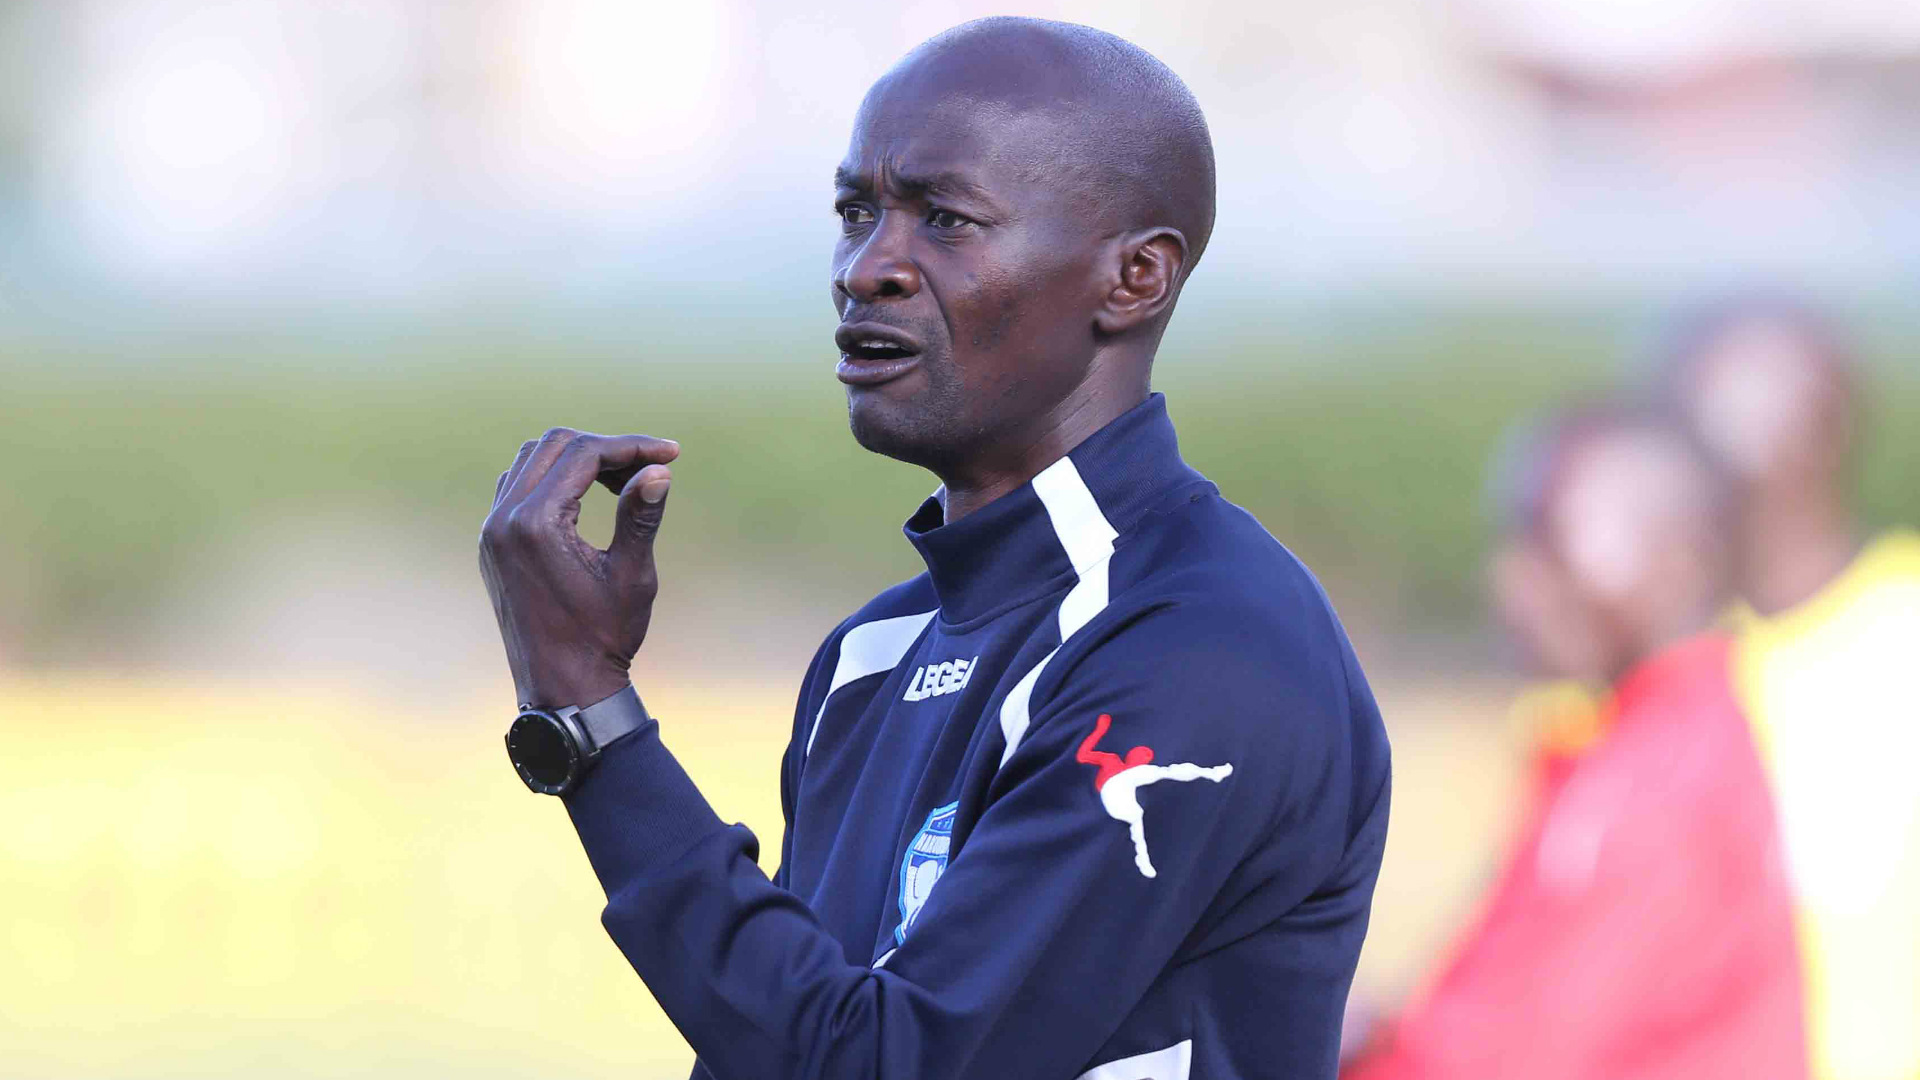 Wazito want to be among top teams in KPL - Fred Ambani